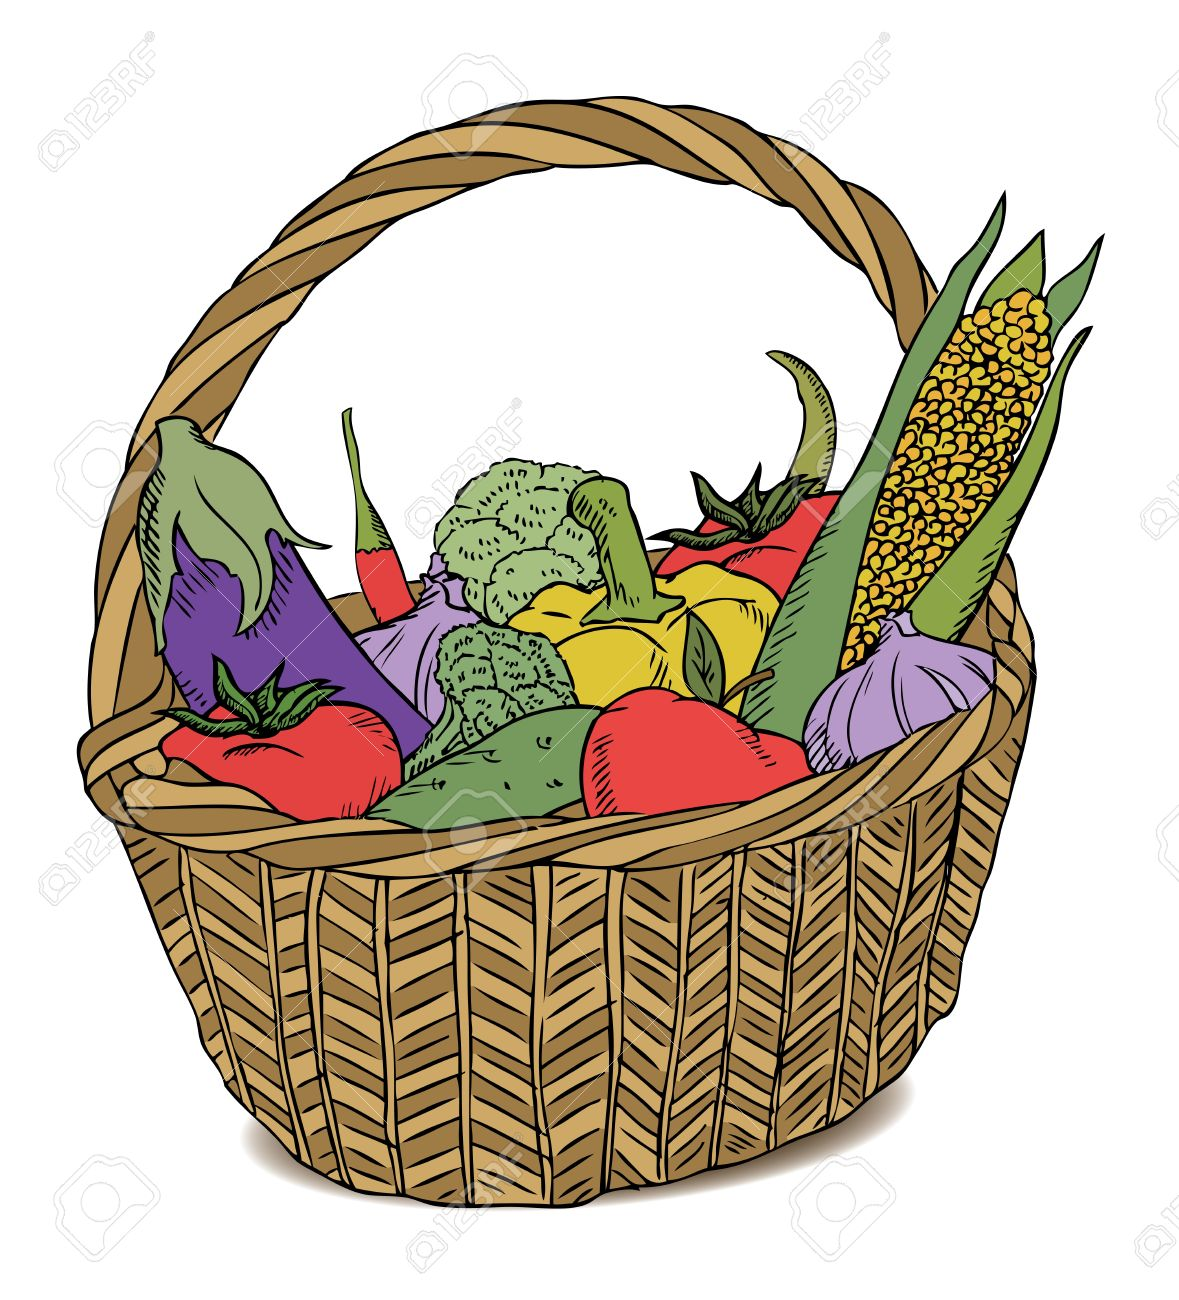 1179x1300 Vegetable Basket Sketch